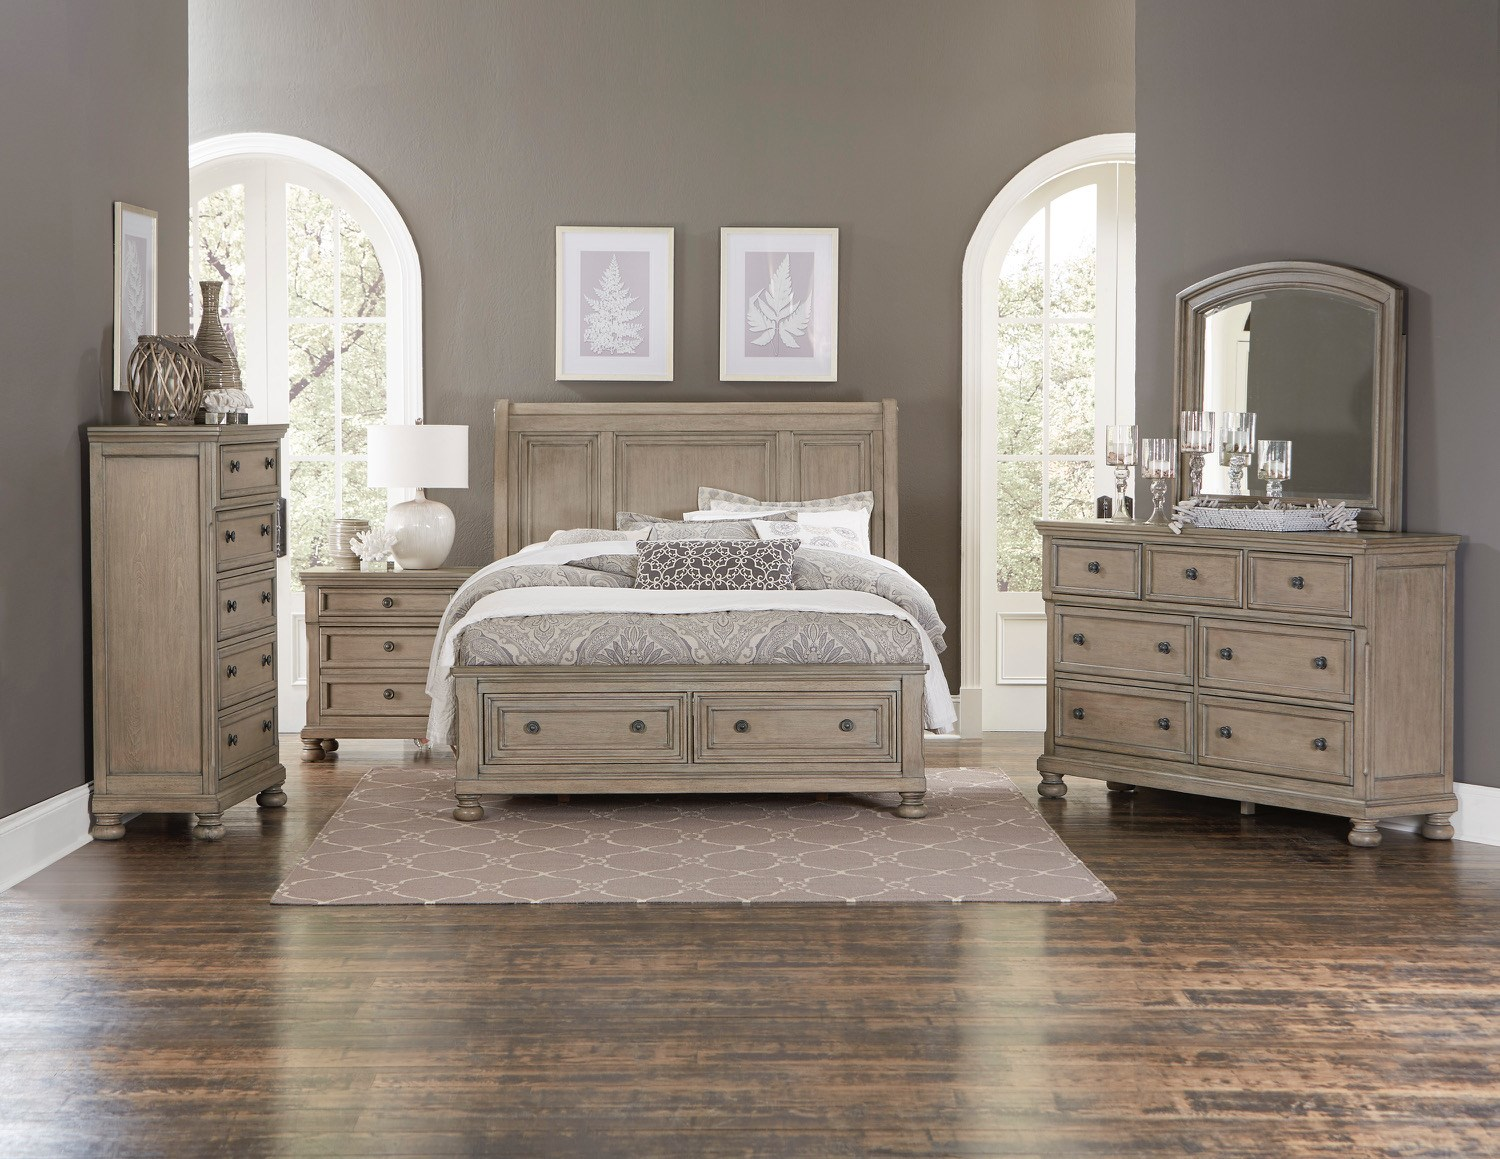 Homelegance 2259GY Queen Bedroom Group - Item Number: 2259GY Q Bedroom Group 1